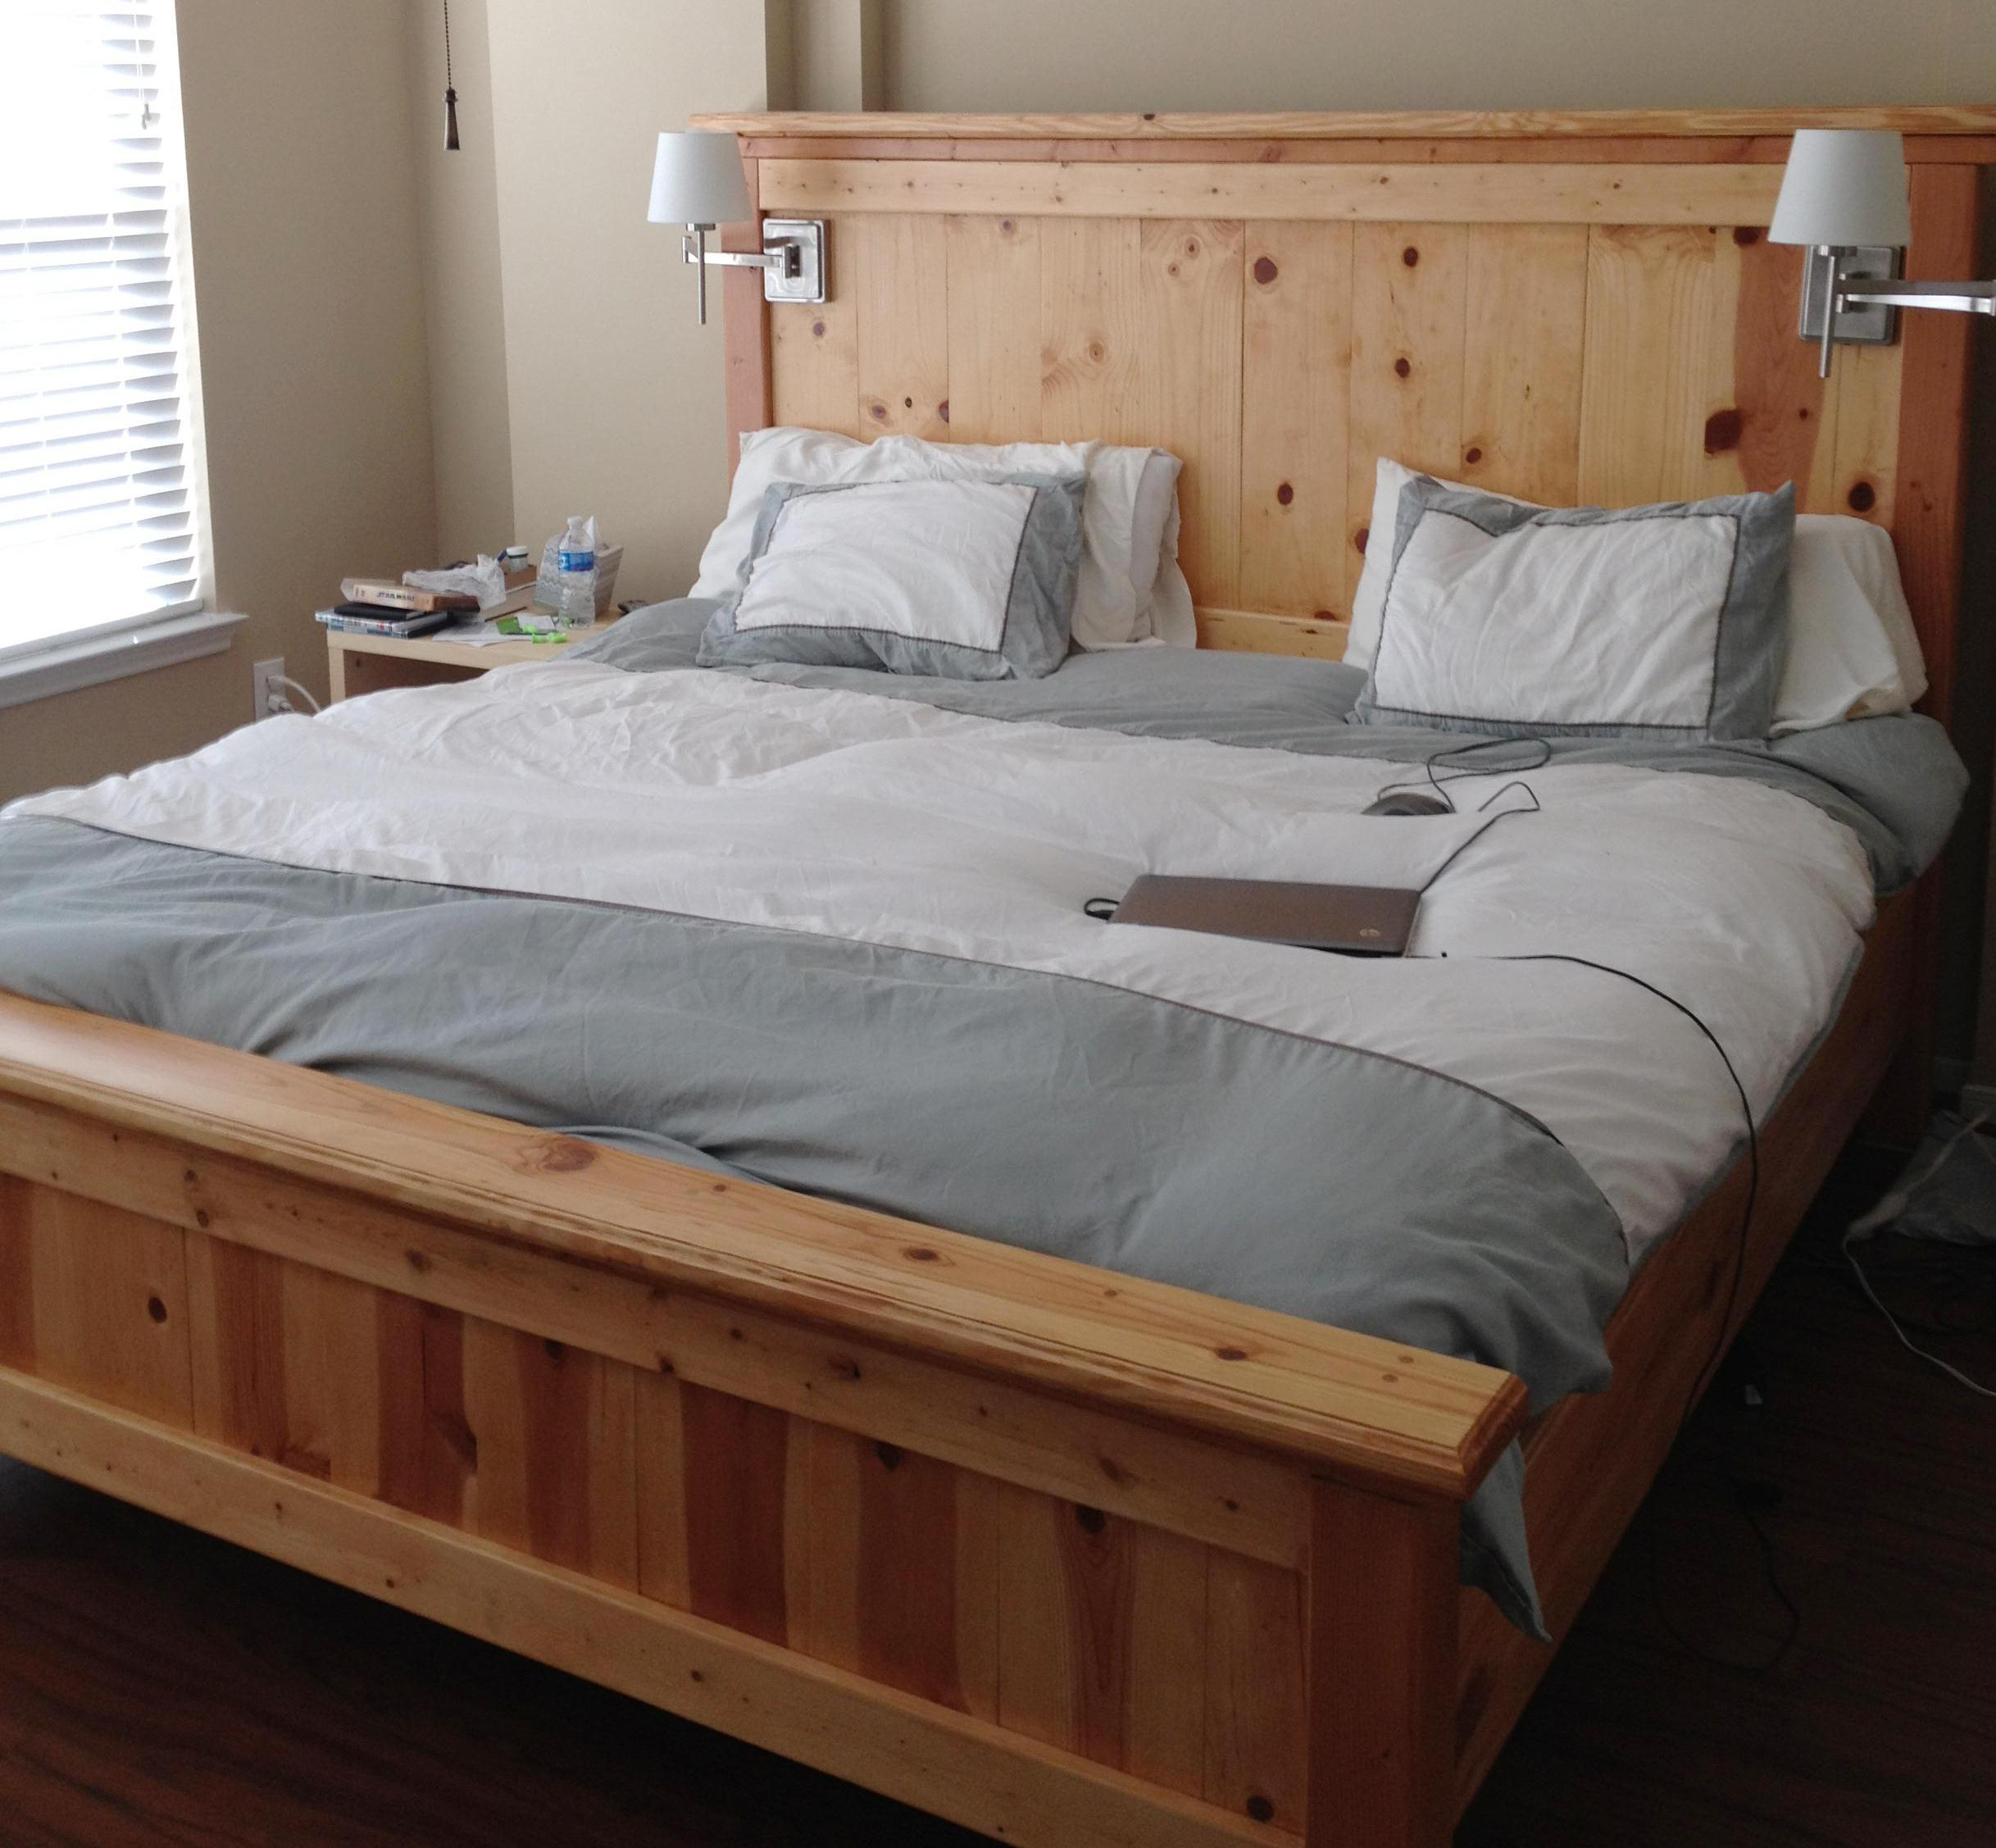 Ana White Farmhouse Bed King Diy Projects